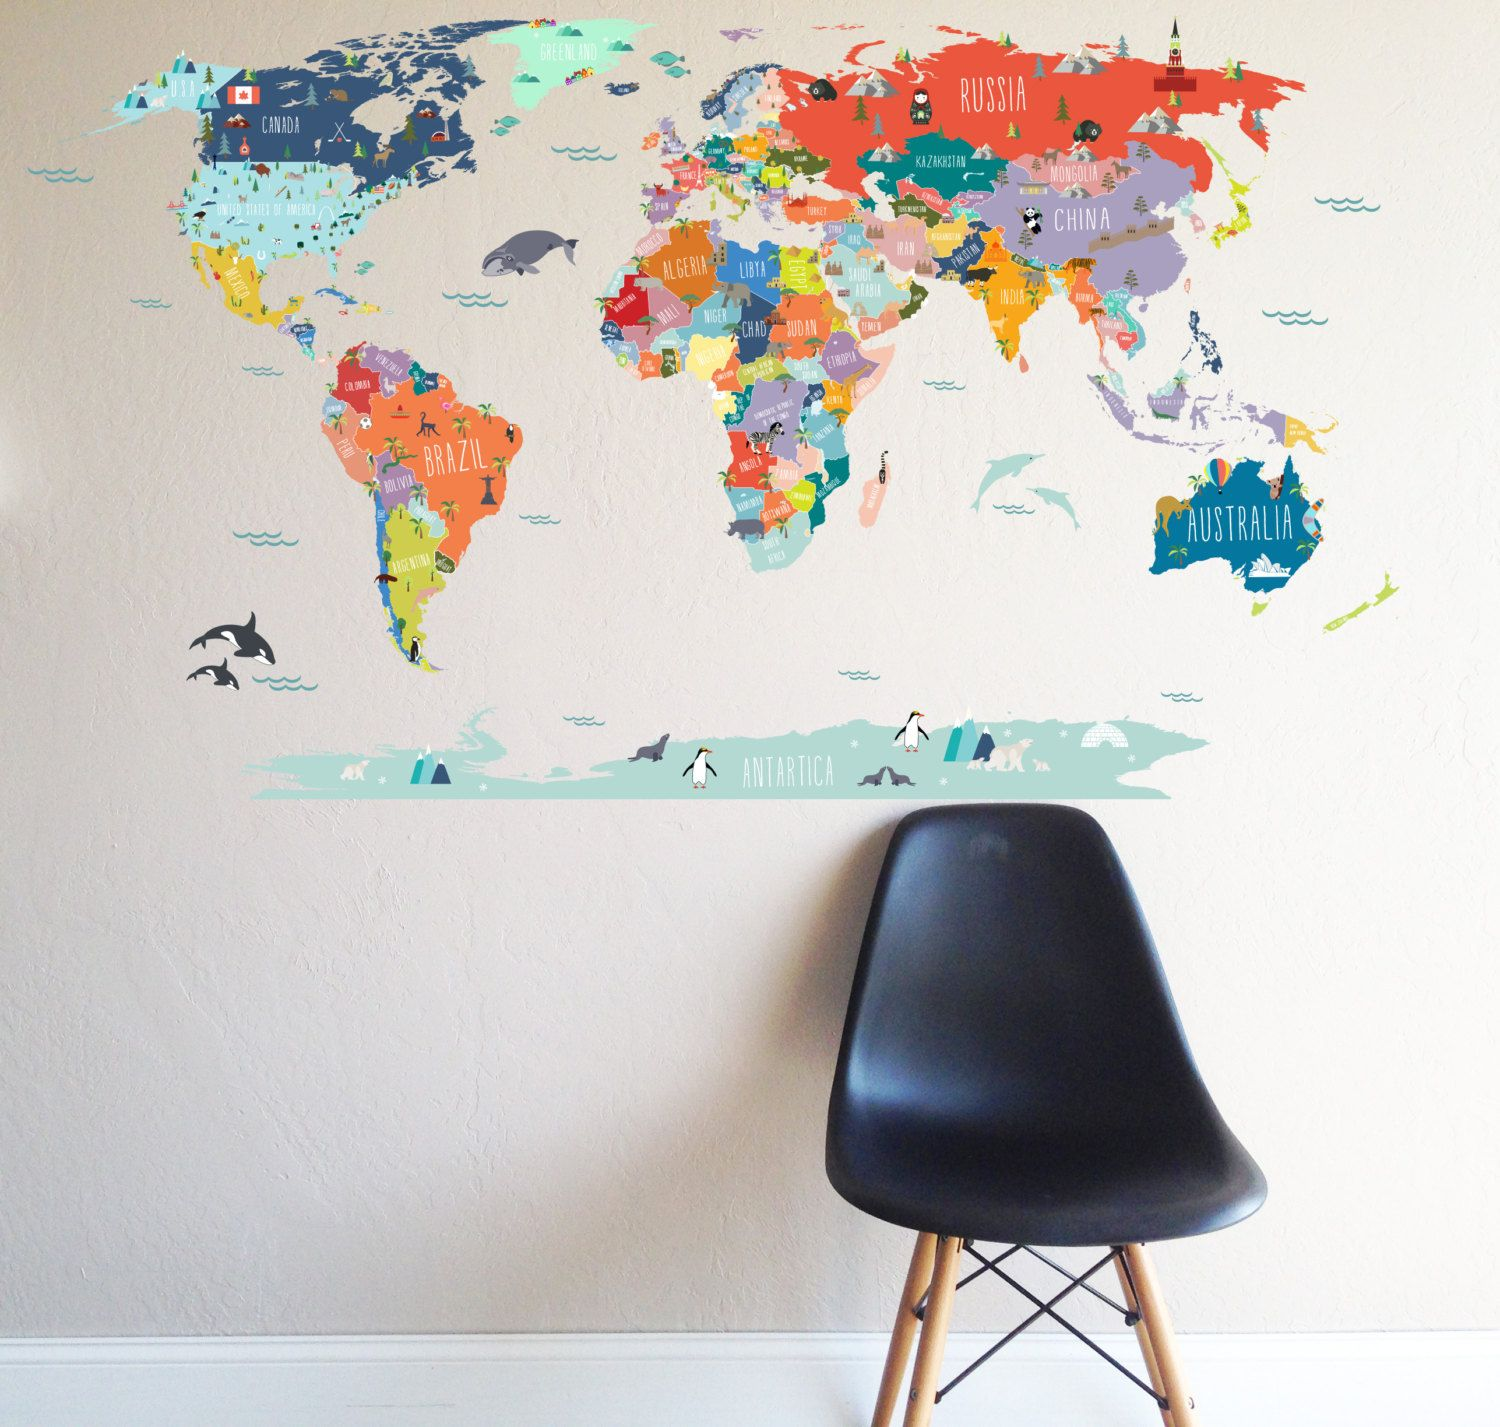 Wall decal world map interactive map wall sticker room decor map wall decal world map interactive map wall sticker room decor map decor gumiabroncs Gallery